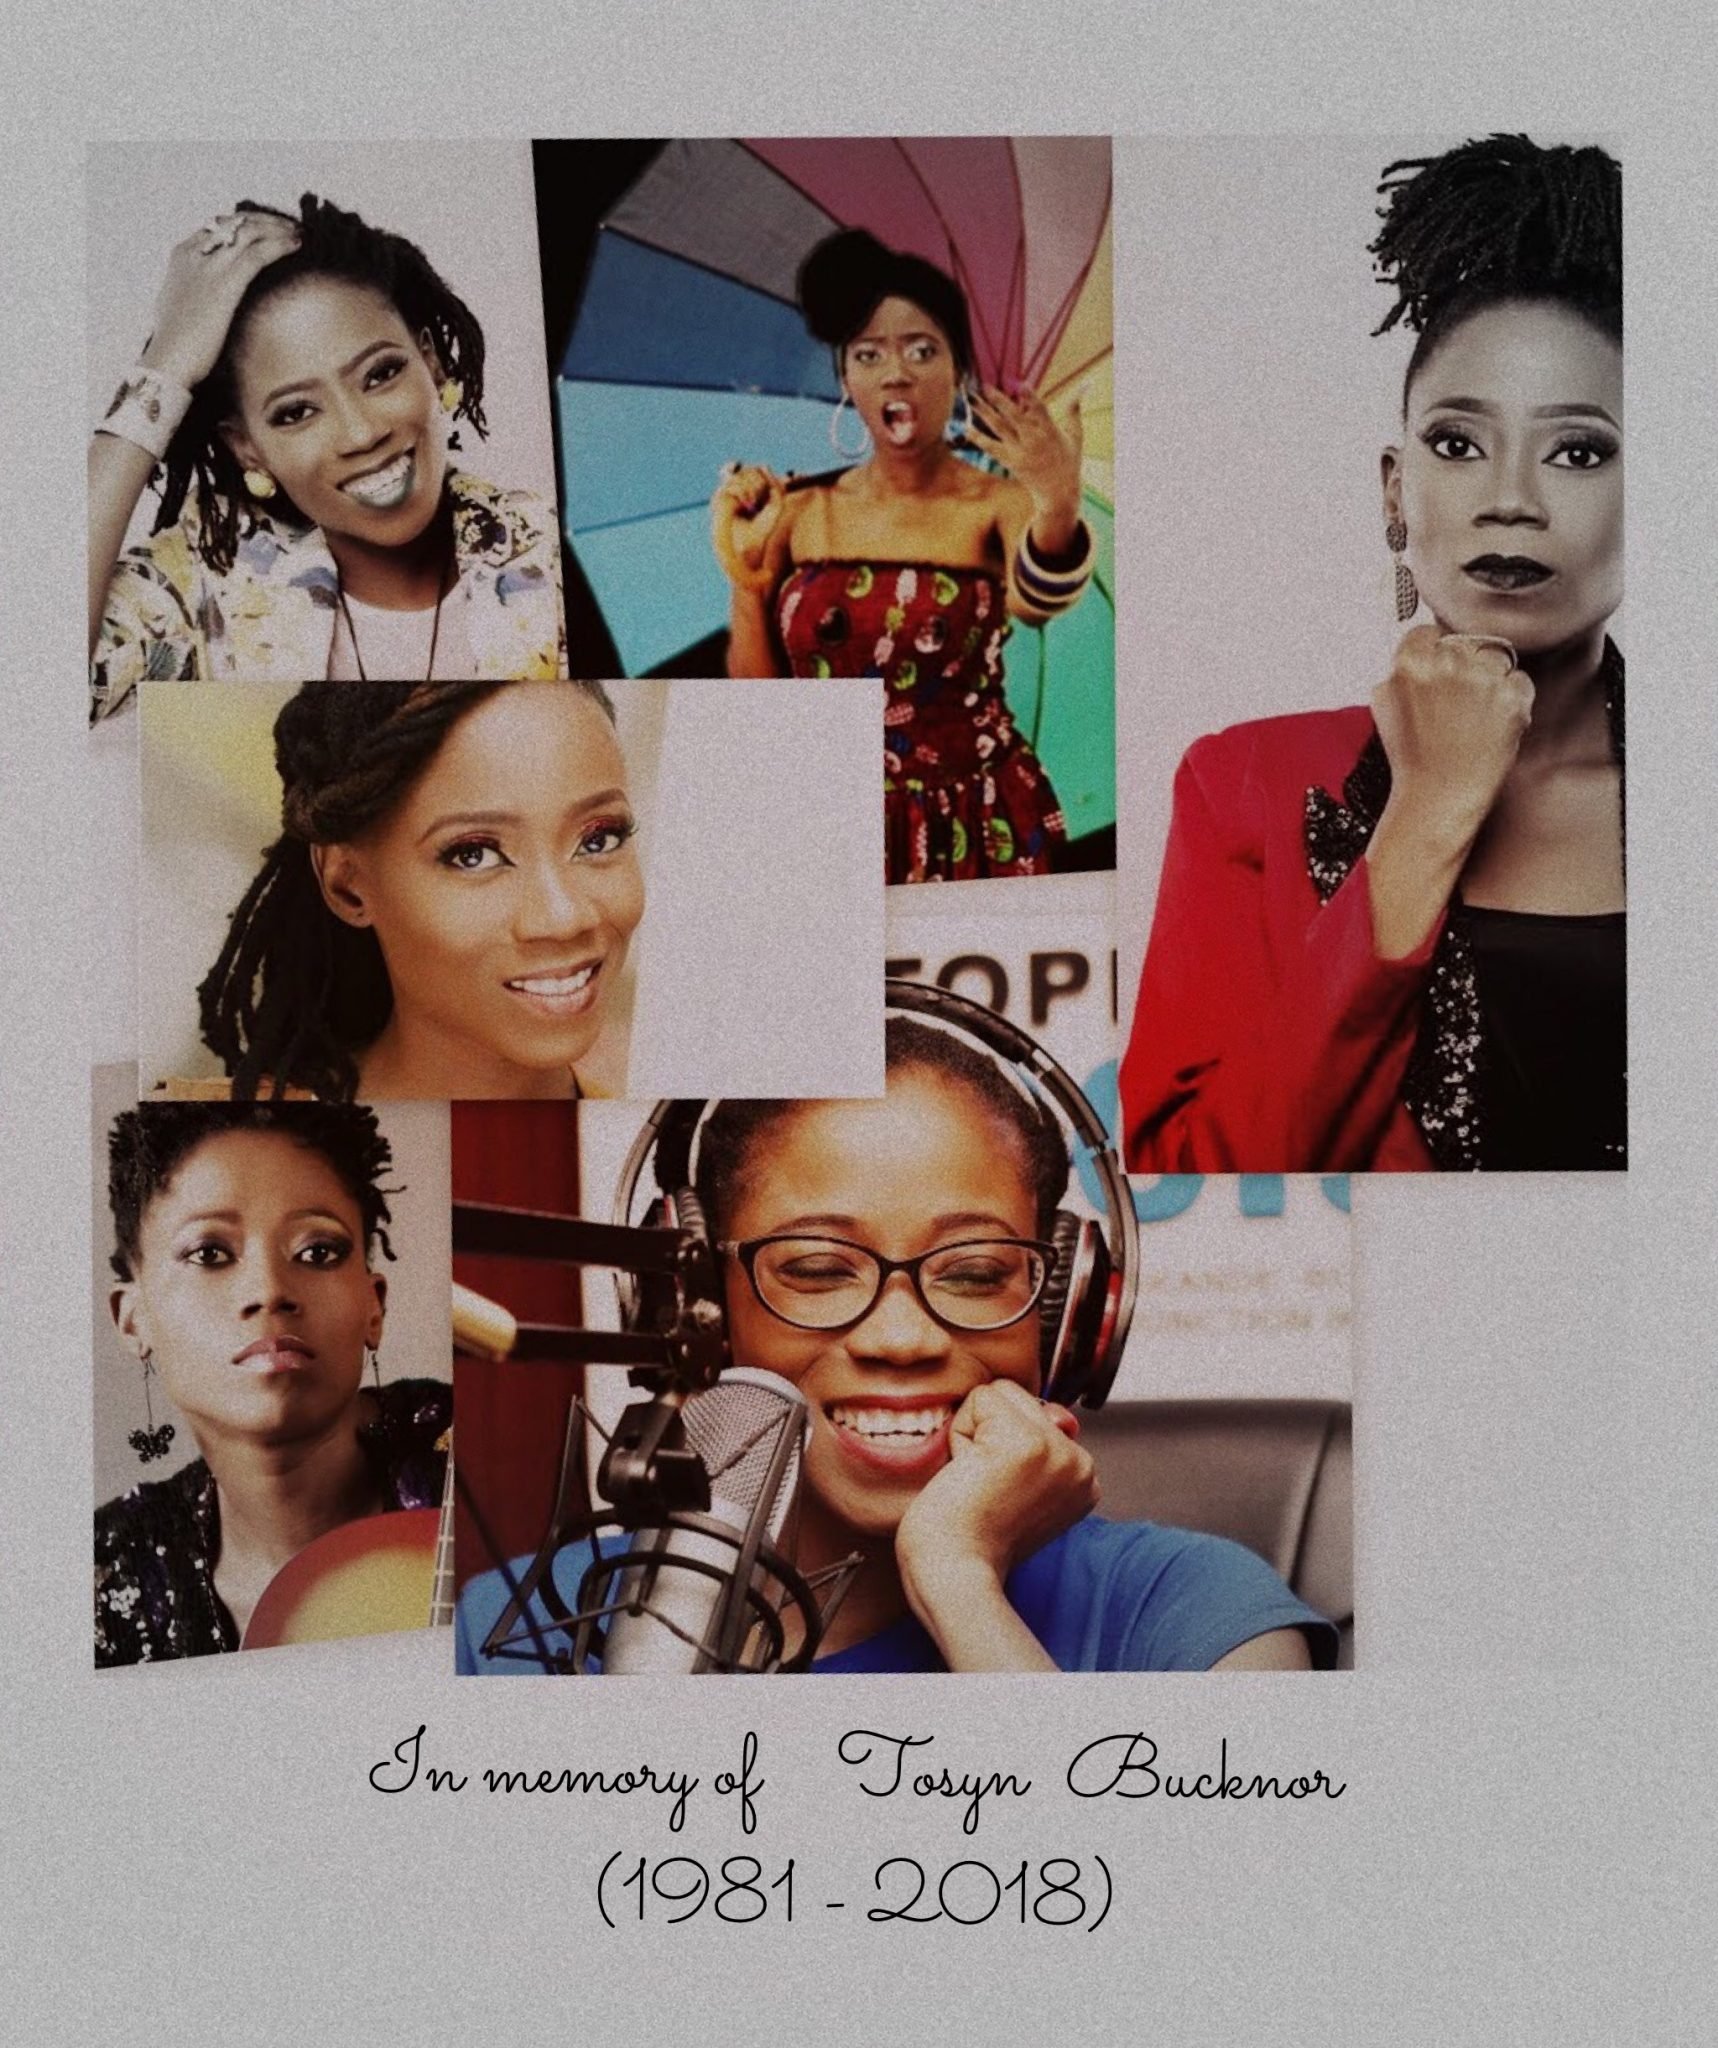 'What is Alté Sef?' - ON TV, THE INTERNET AND TOSYN BUCKNOR, THE FIRST ALTÈ GIRL